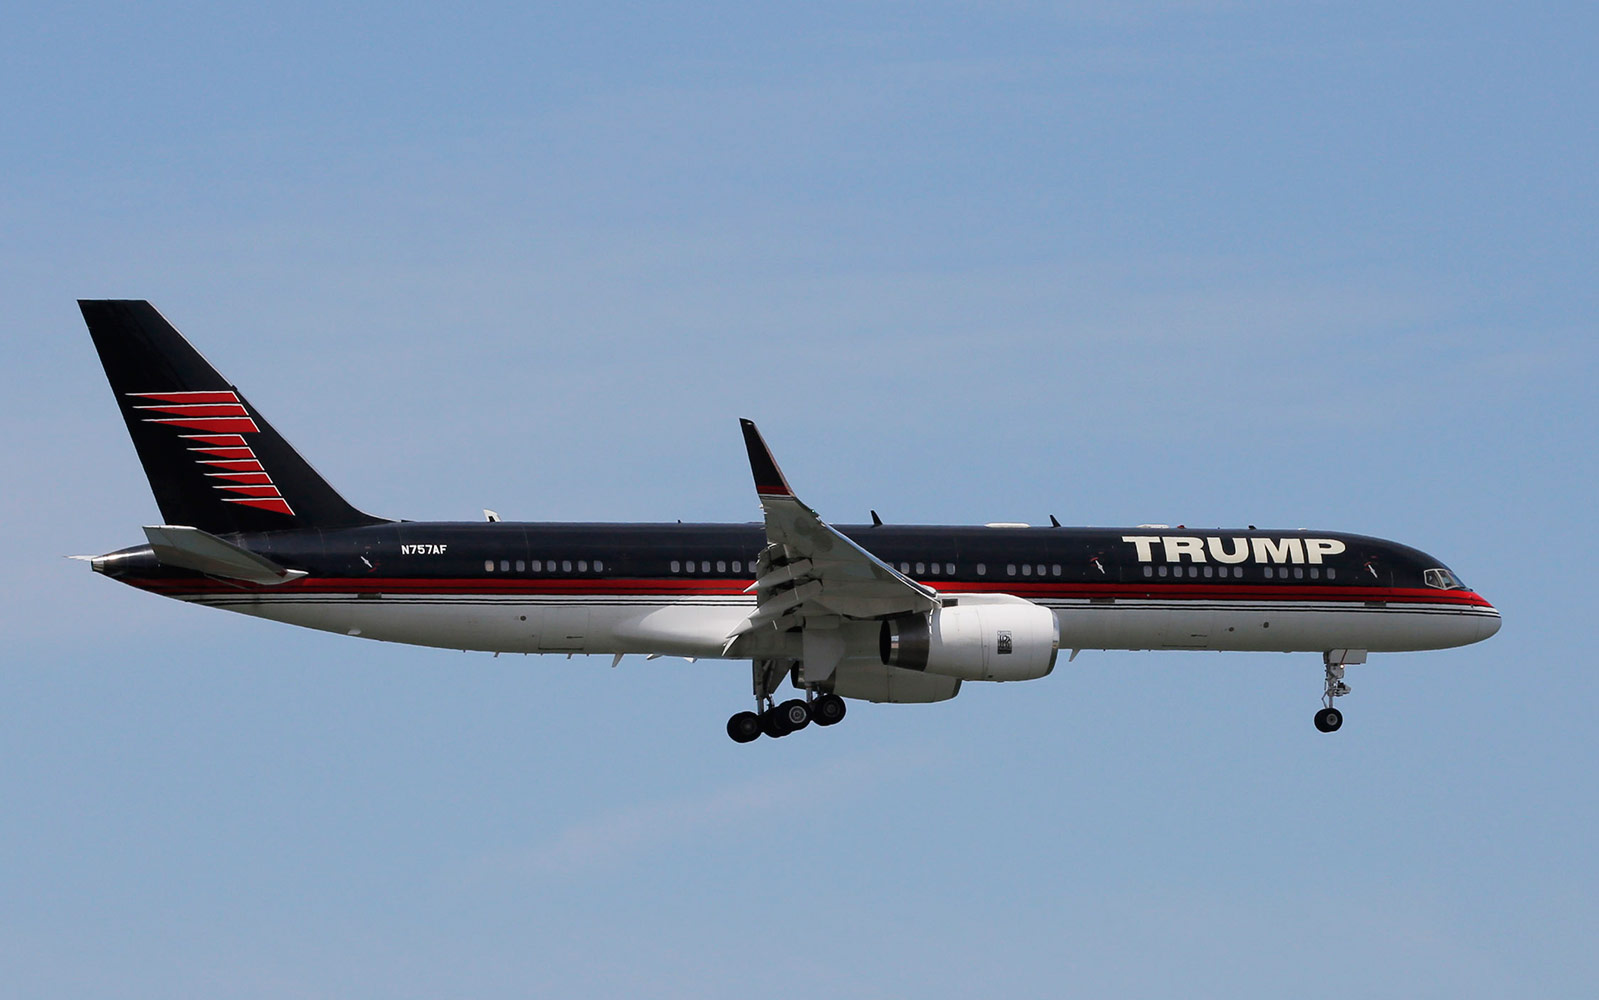 Trump's plane/Air Force One